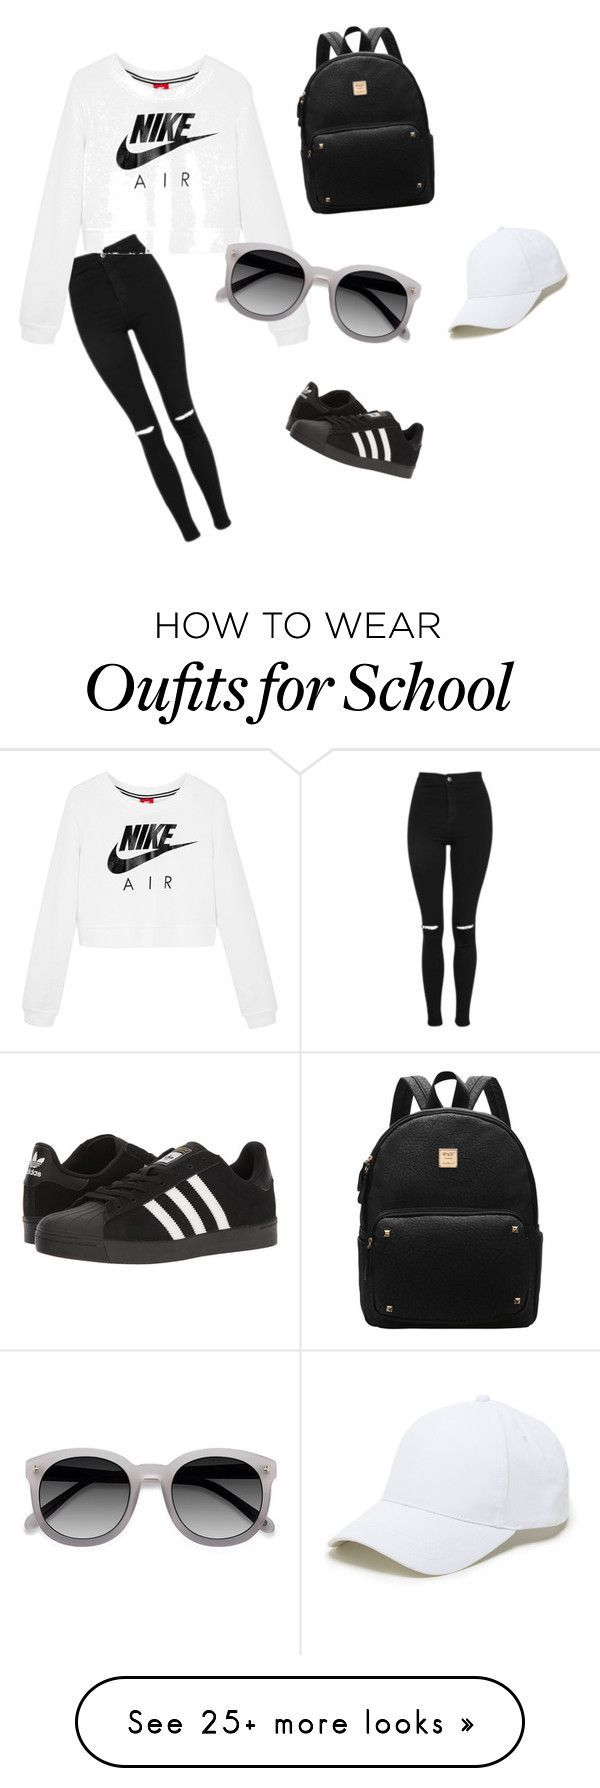 """Black and white school outfit"" by fcong on Polyvore featuring Topshop, NIKE, adidas, Ace and Sole Society"